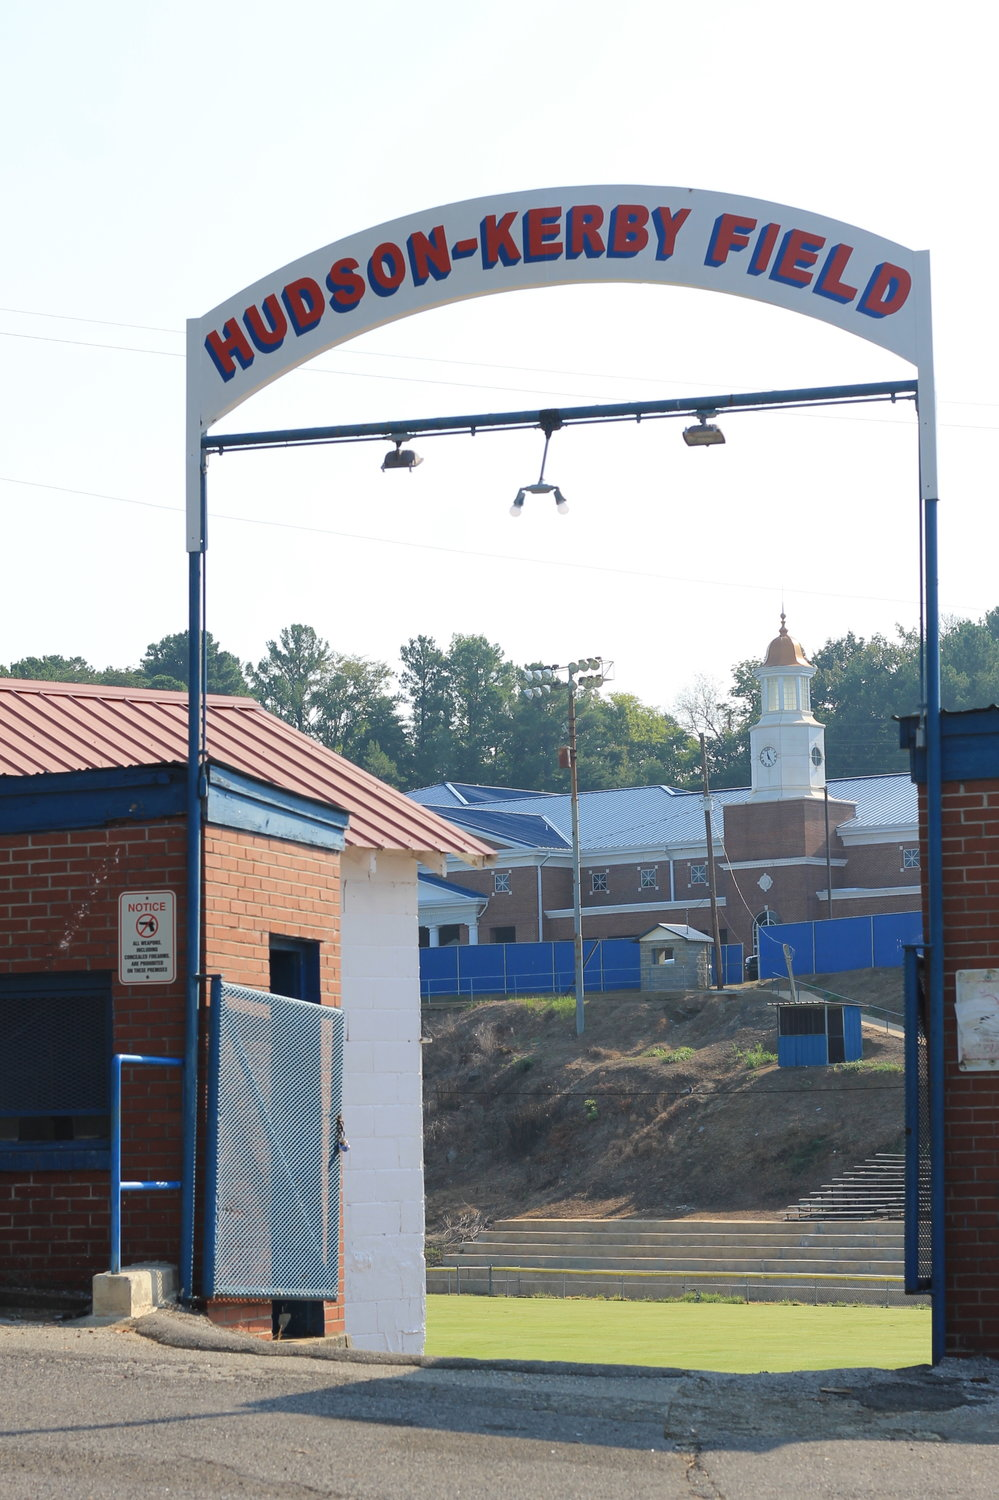 The sign at Hudson-Kerby Field was taken down and repainted over the summer.